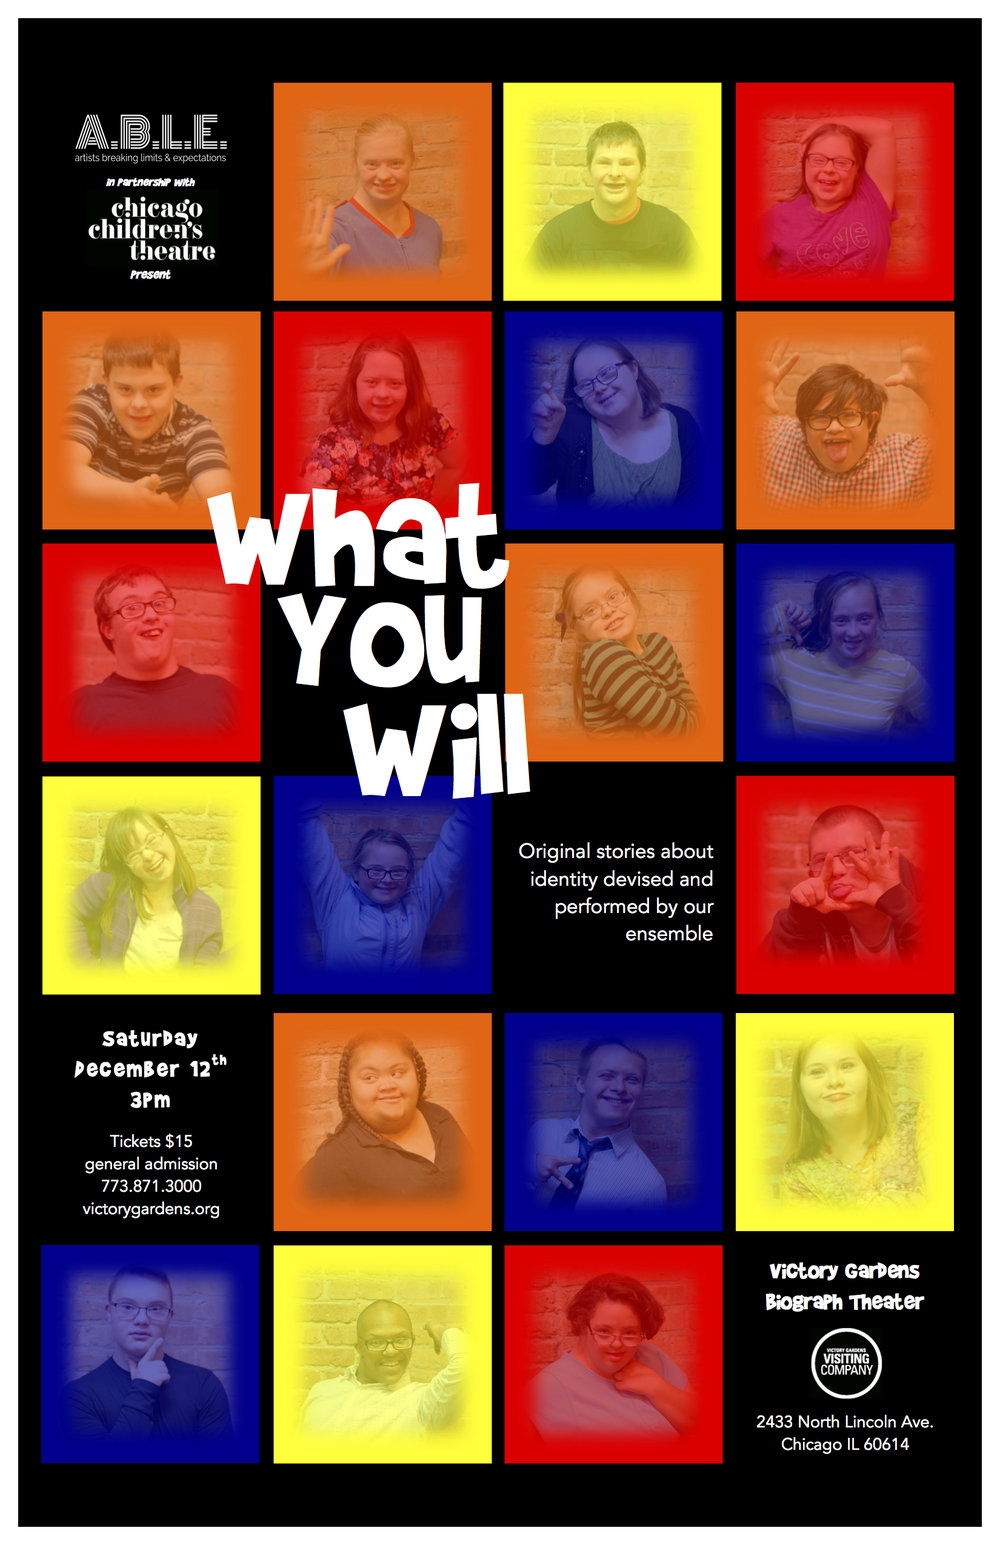 ABLE what you will poster.jpg